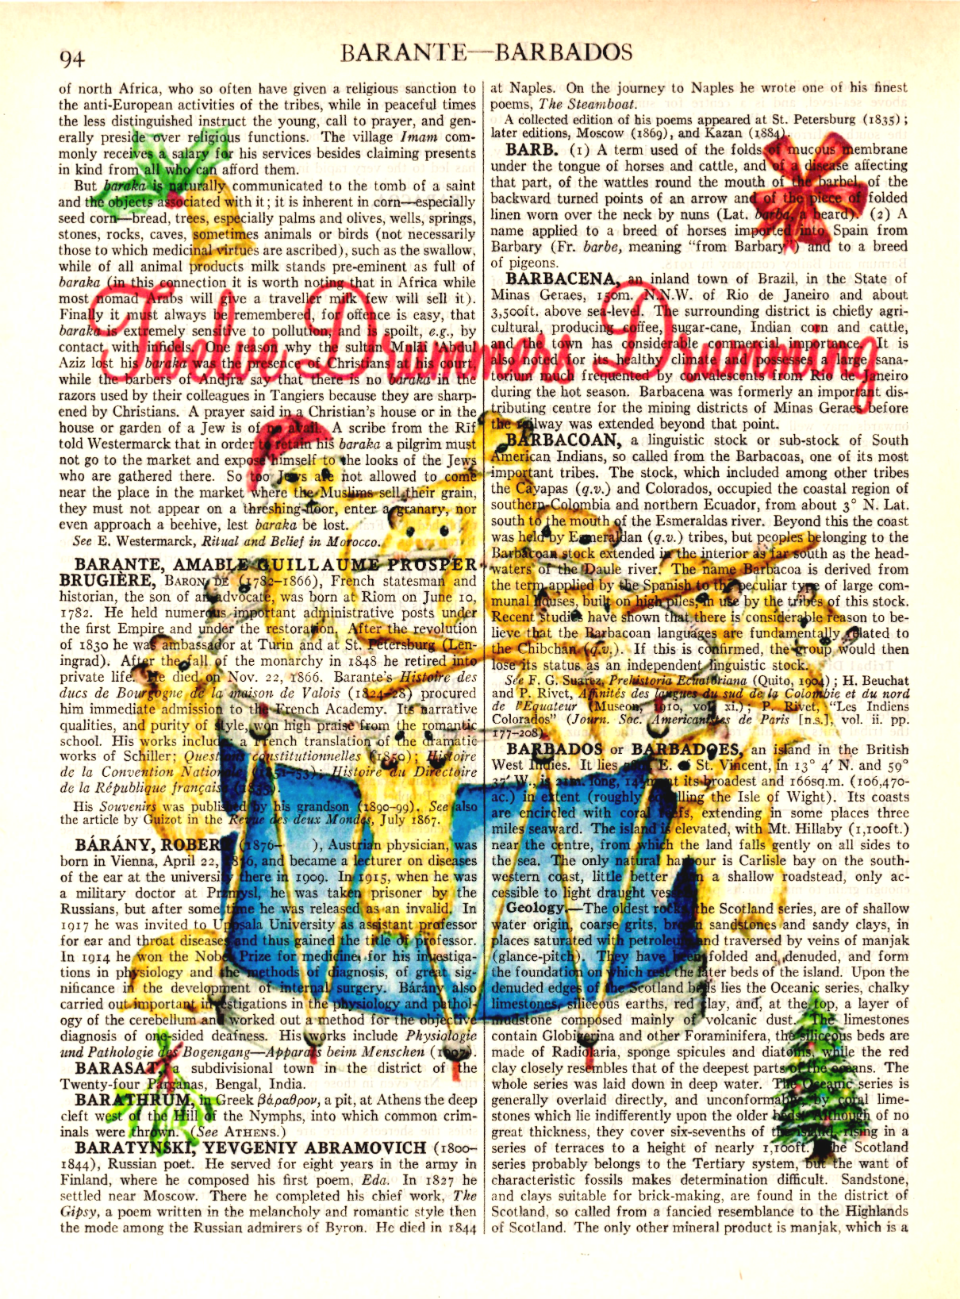 12th day of christmas 12 drummers drumming for 12 days of christmas decoration theme